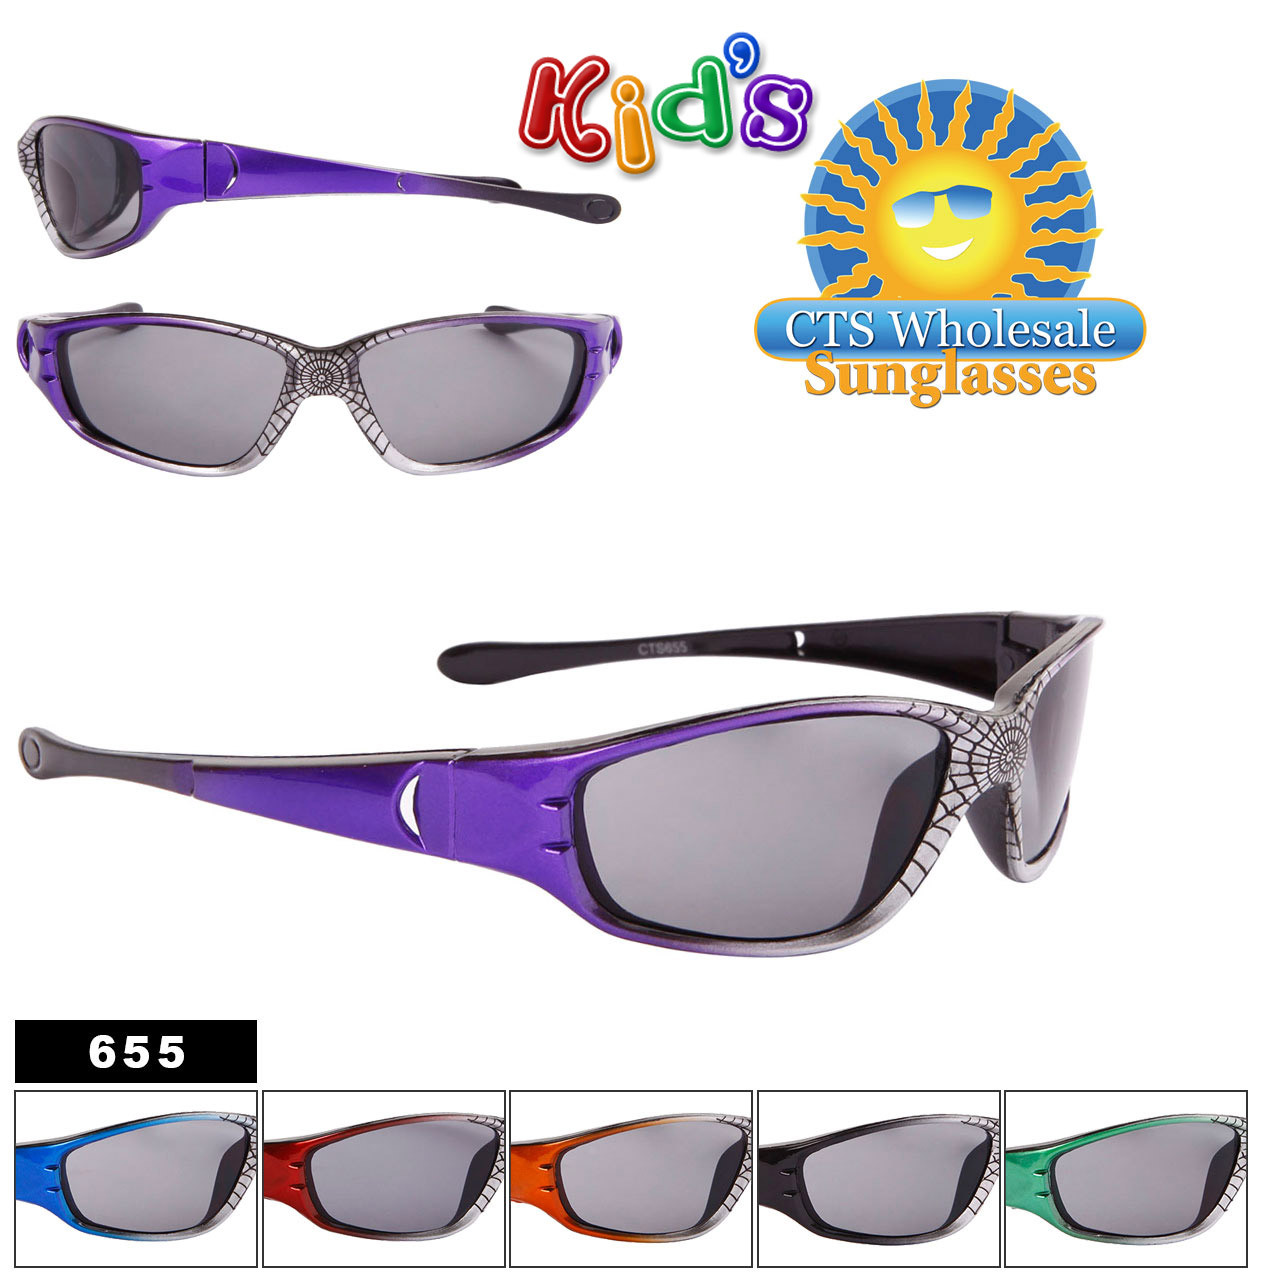 Sporty Kid's Sunglasses Wholesale - Style #655